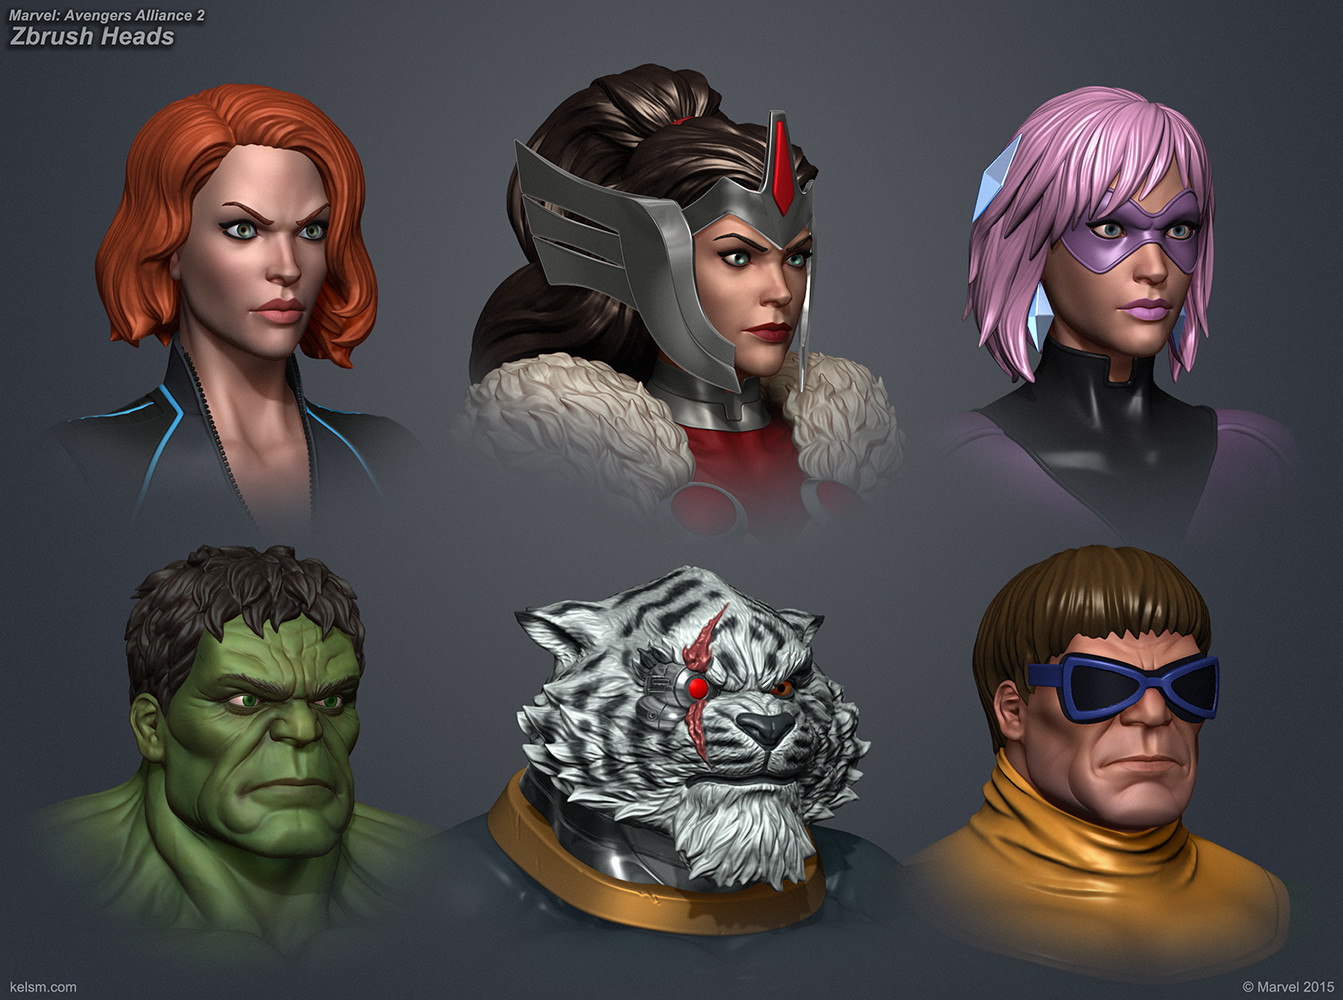 Marvel Avengers Alliance 2 Heads